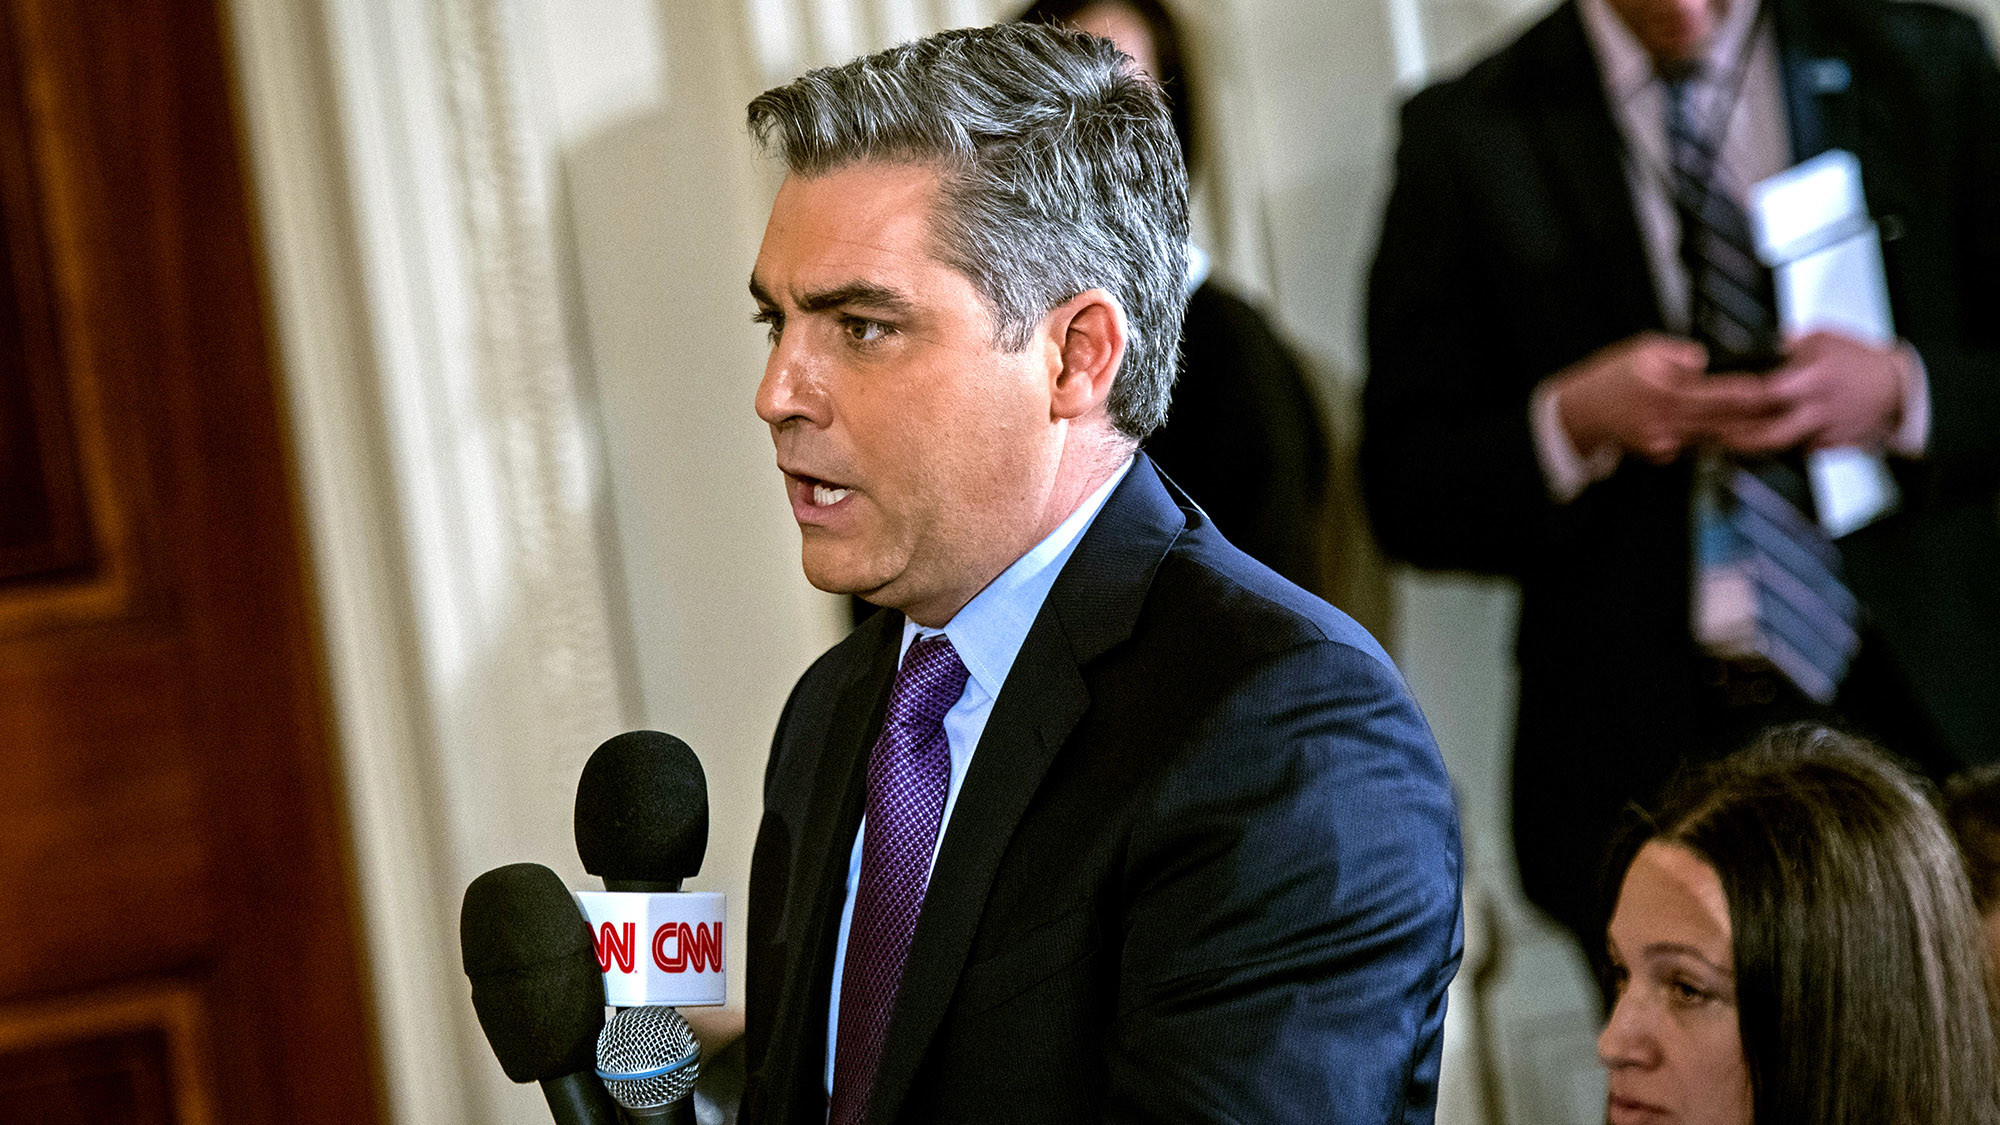 Jim Acosta of CNN asks President Donald Trump a question during a press conference in the East Room of the White House on Thurs., Feb. 16, 2017.